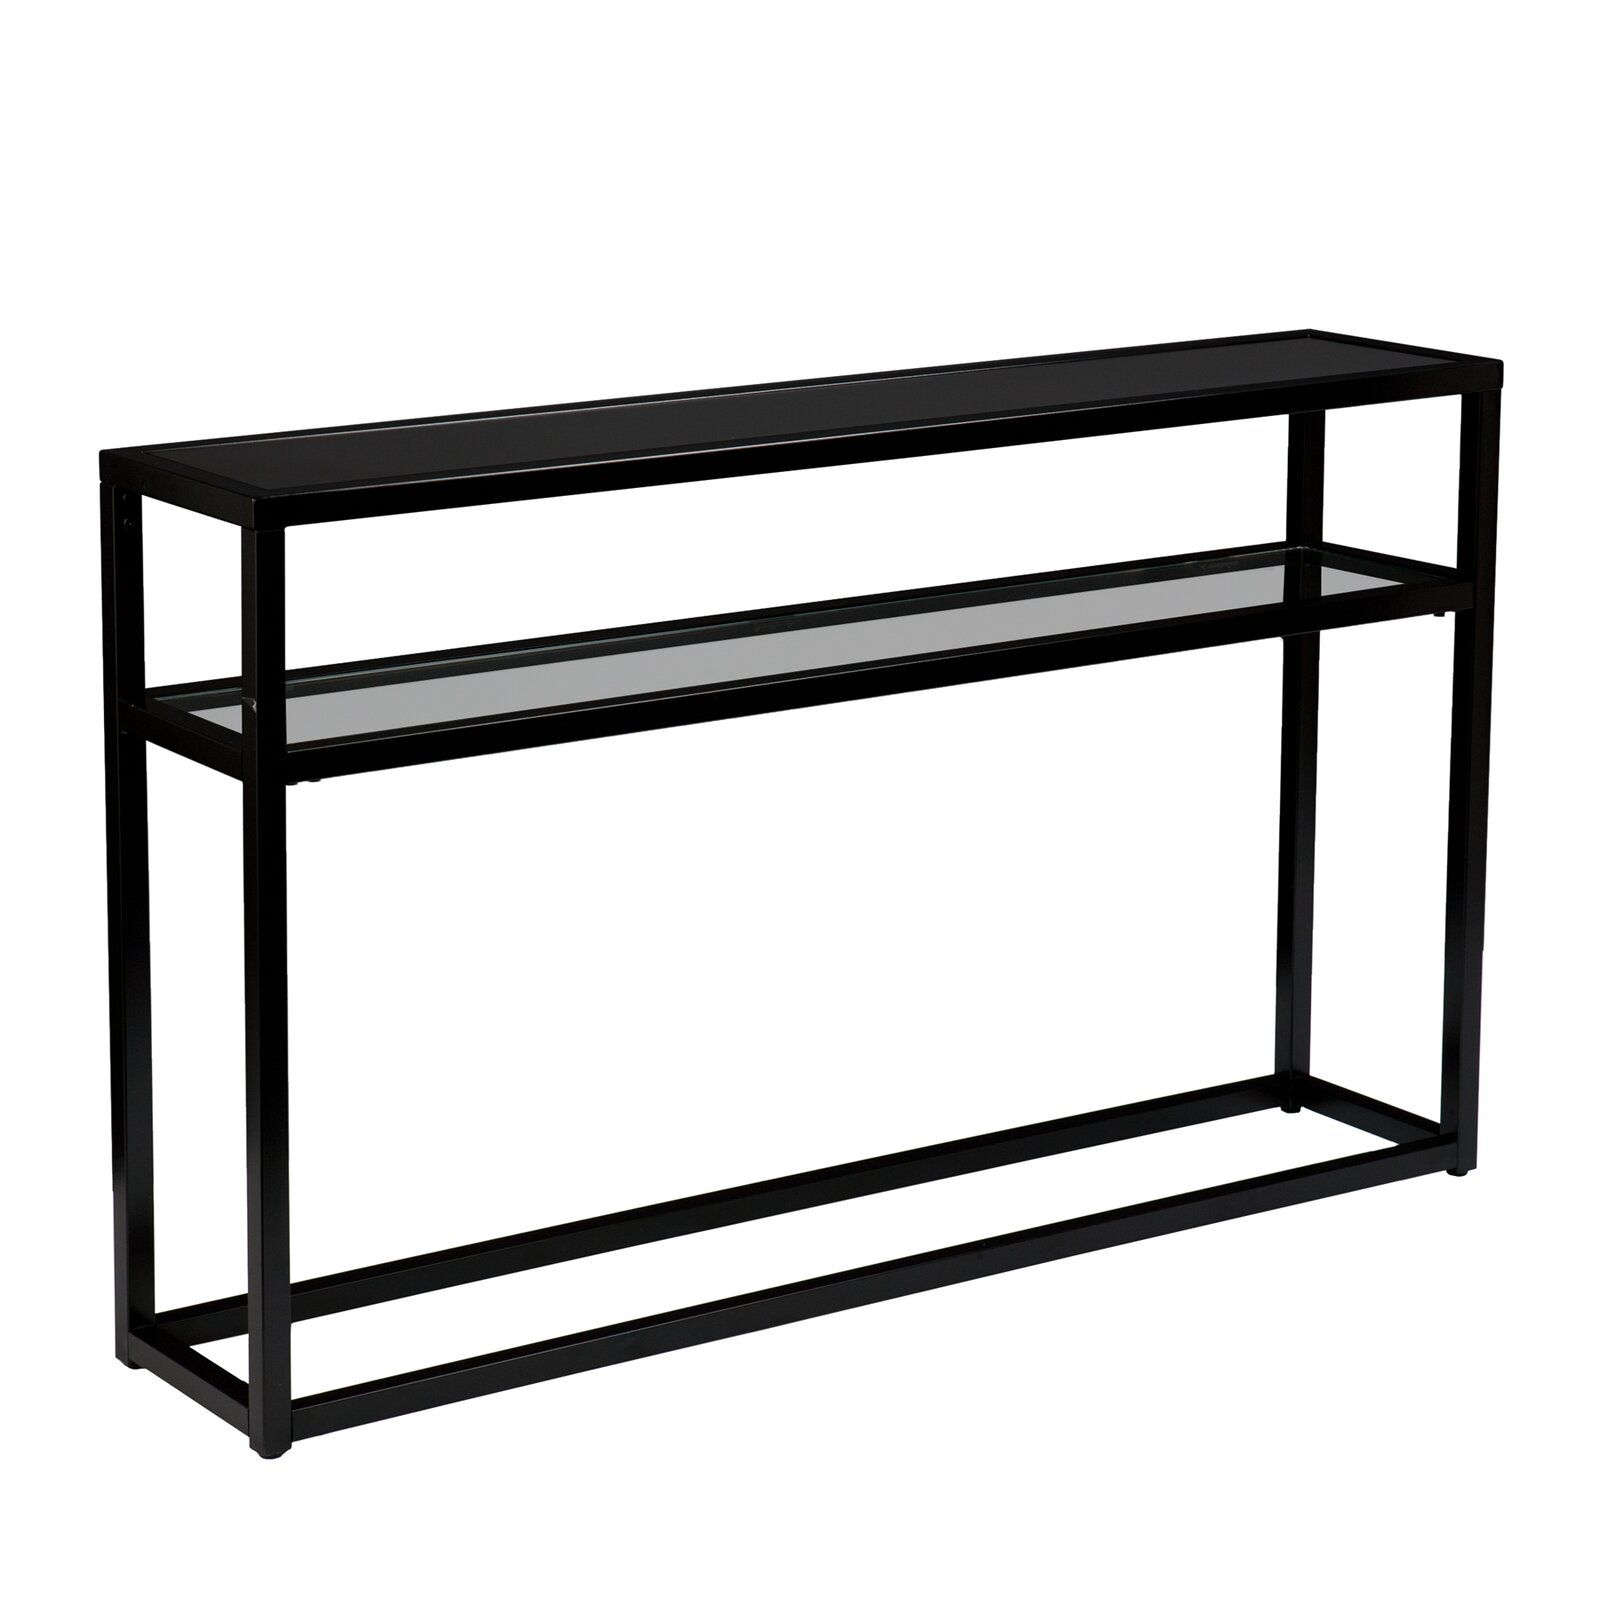 Swanage Console Table Narrow Console Table Black Console Table Contemporary Console Table